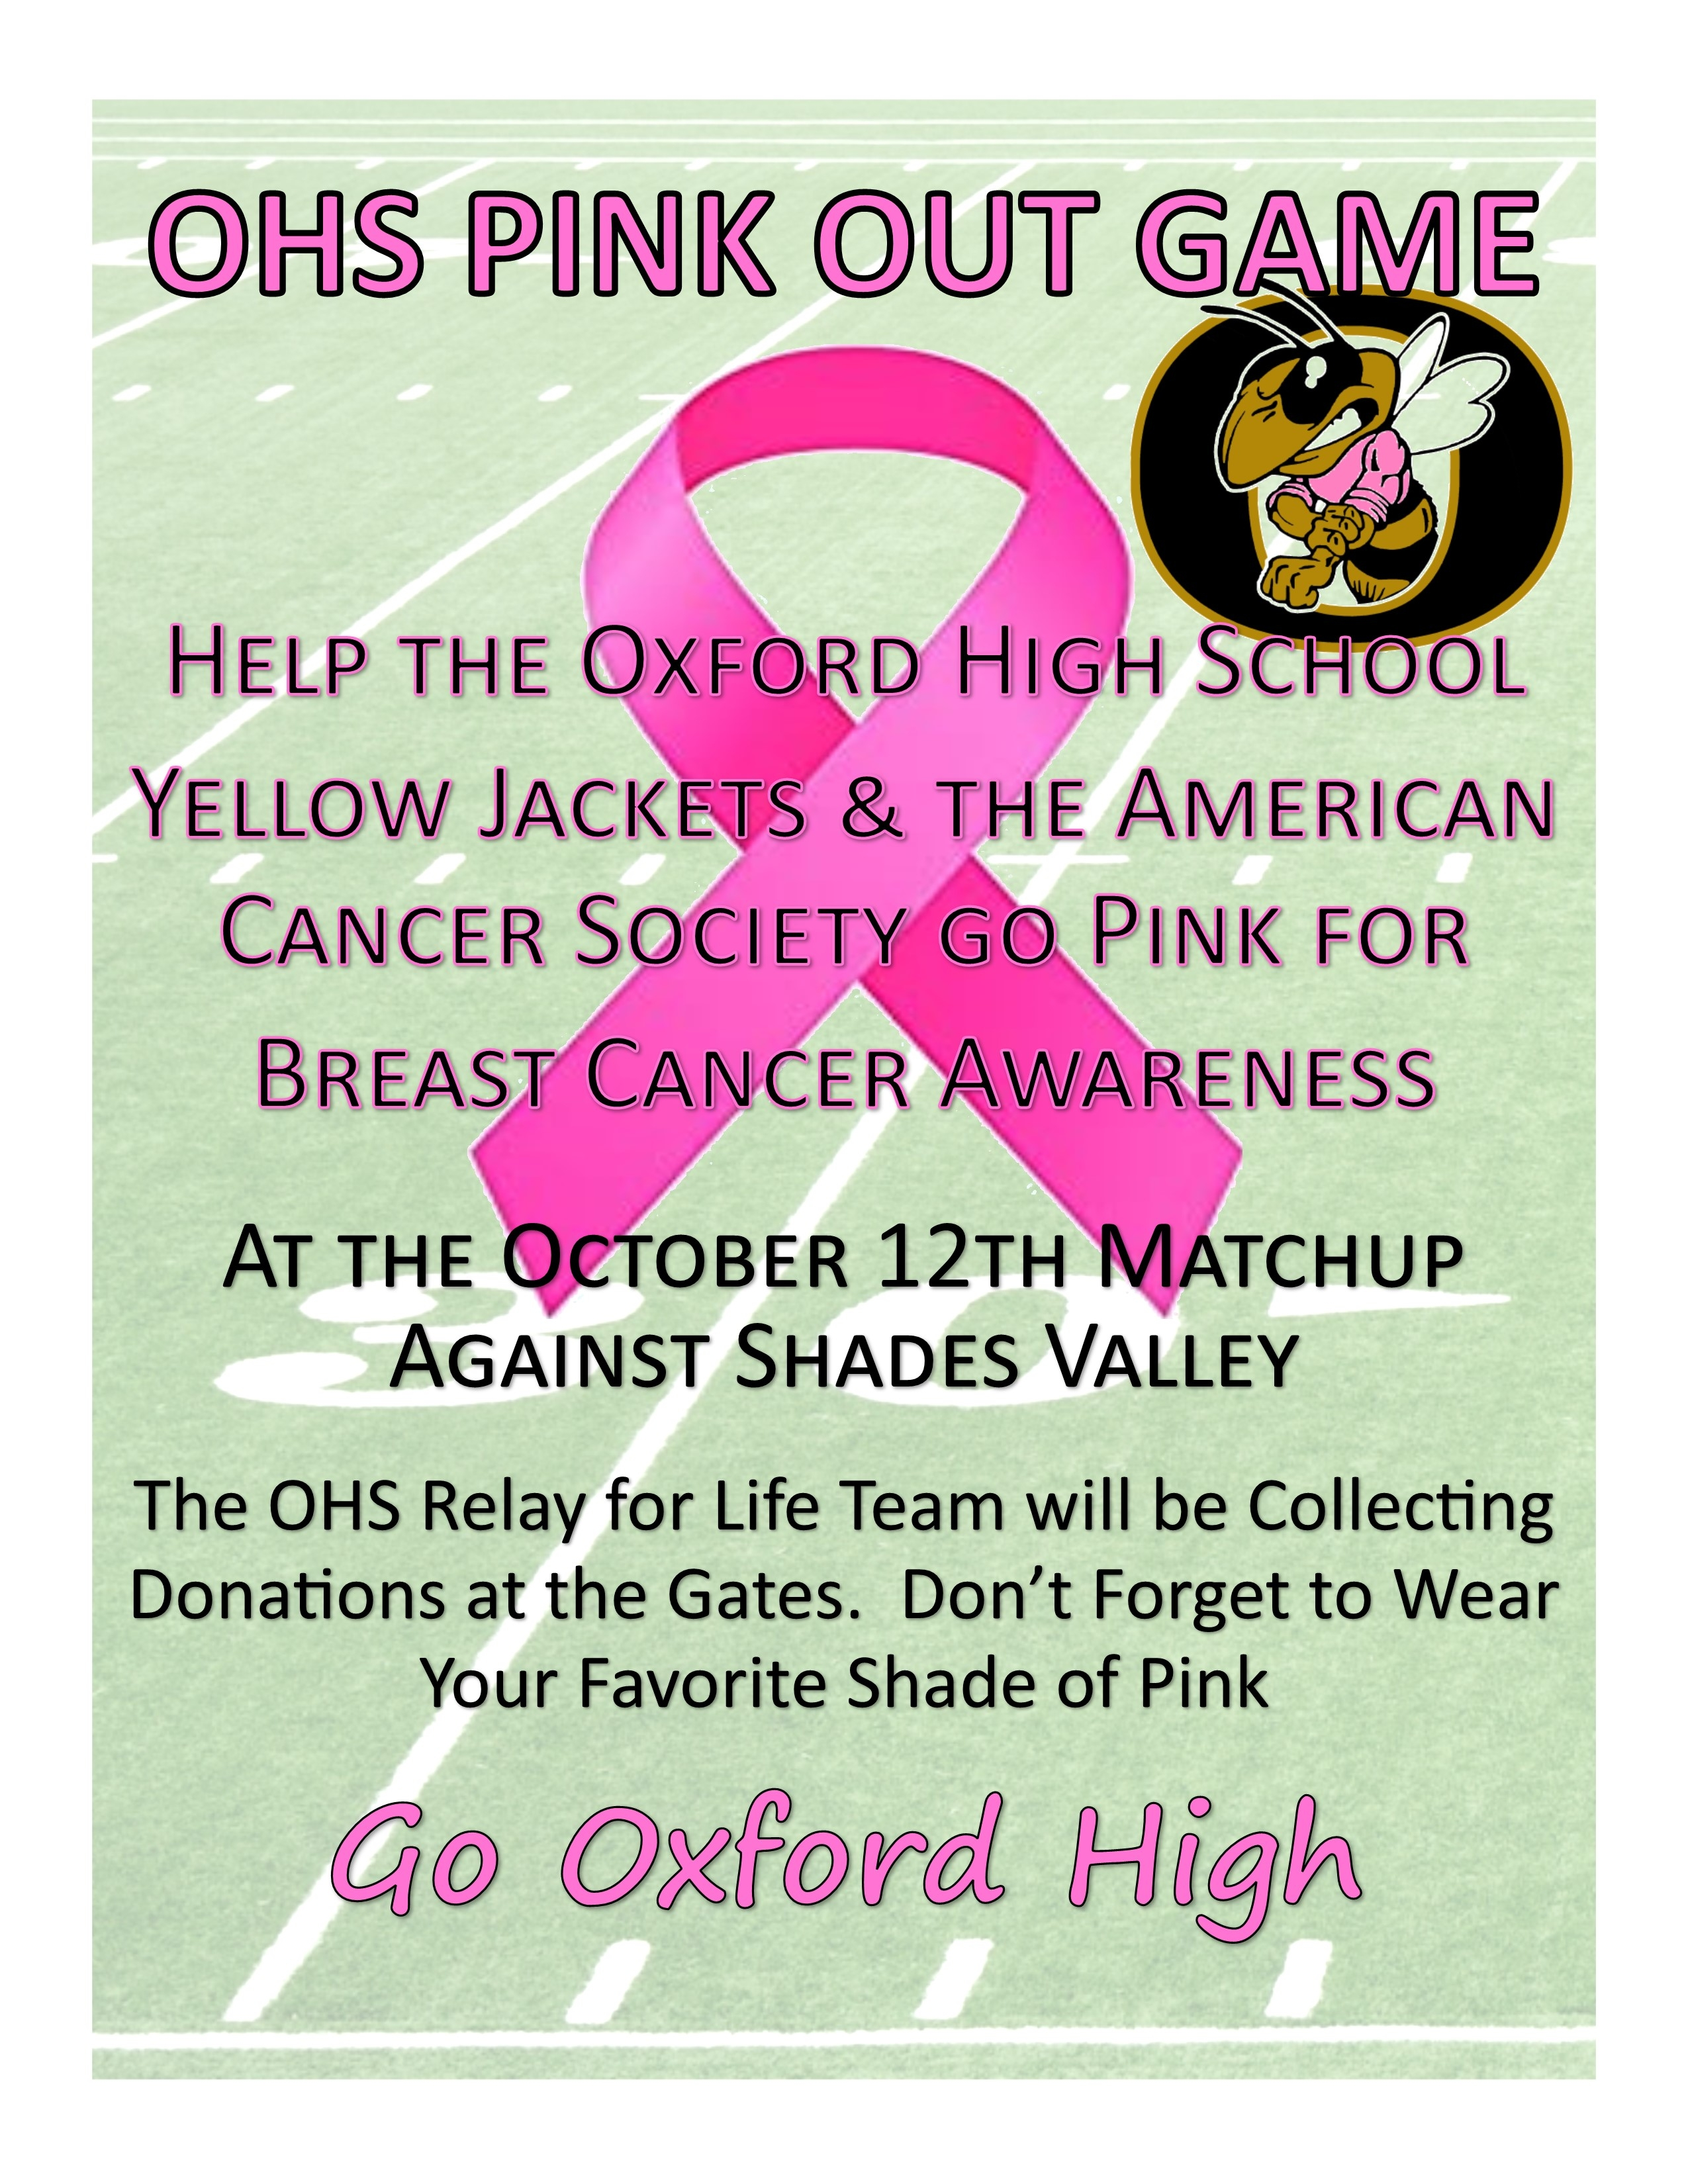 OHS Pink Out Game